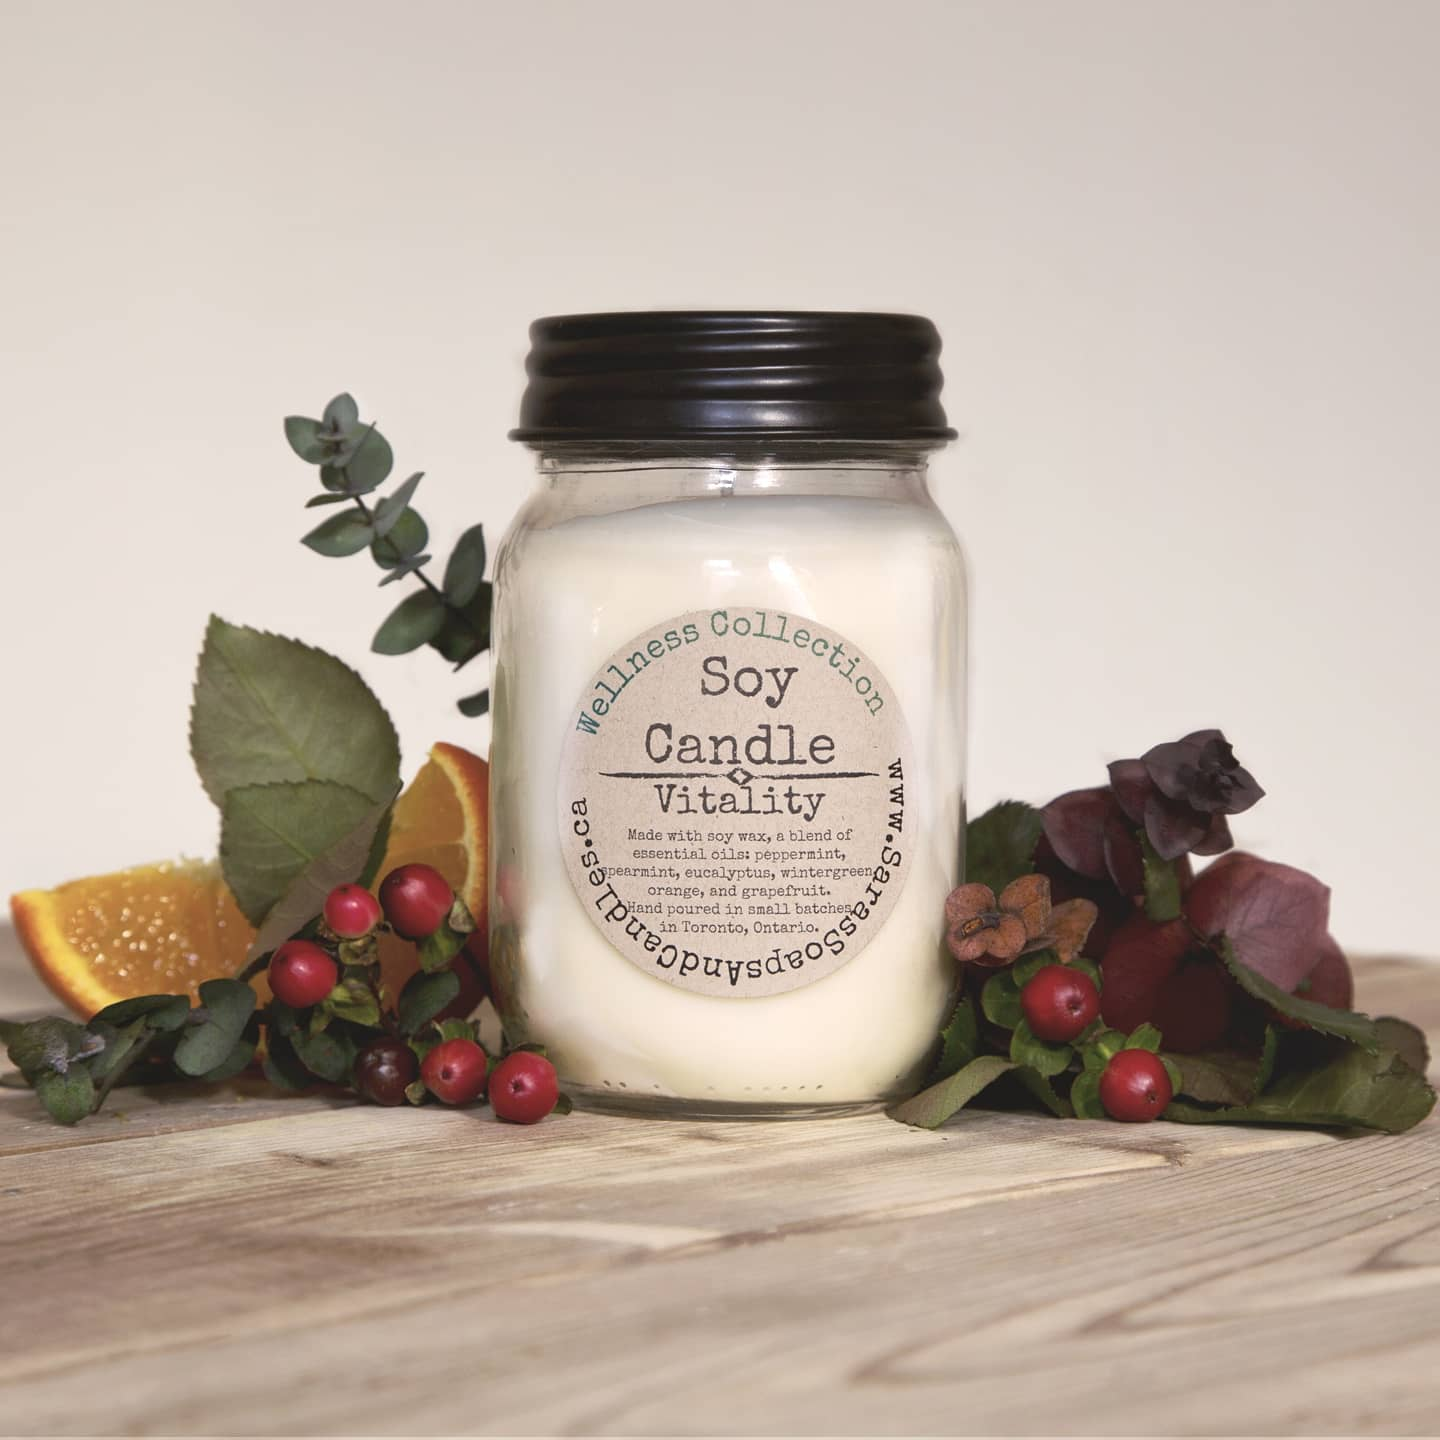 Vitality Soy Candle - 14oz